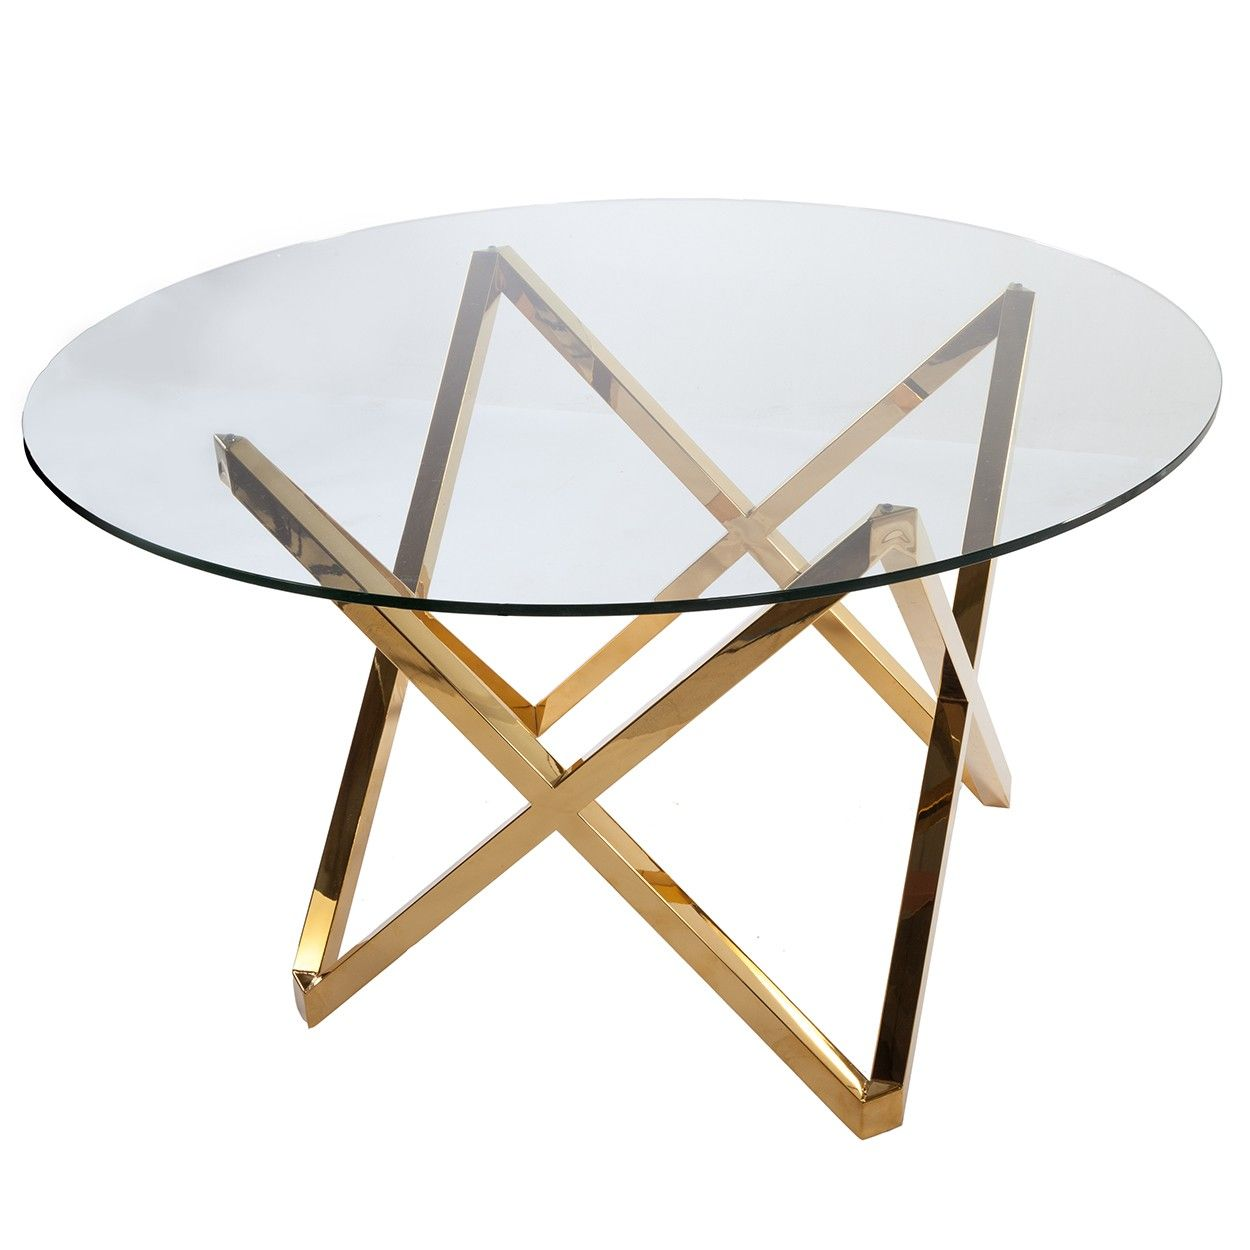 Galvin Dining Table Gold Glass round dining table  : b93927da0d714d767614d61c934c8e45 from www.pinterest.com size 1250 x 1250 jpeg 116kB